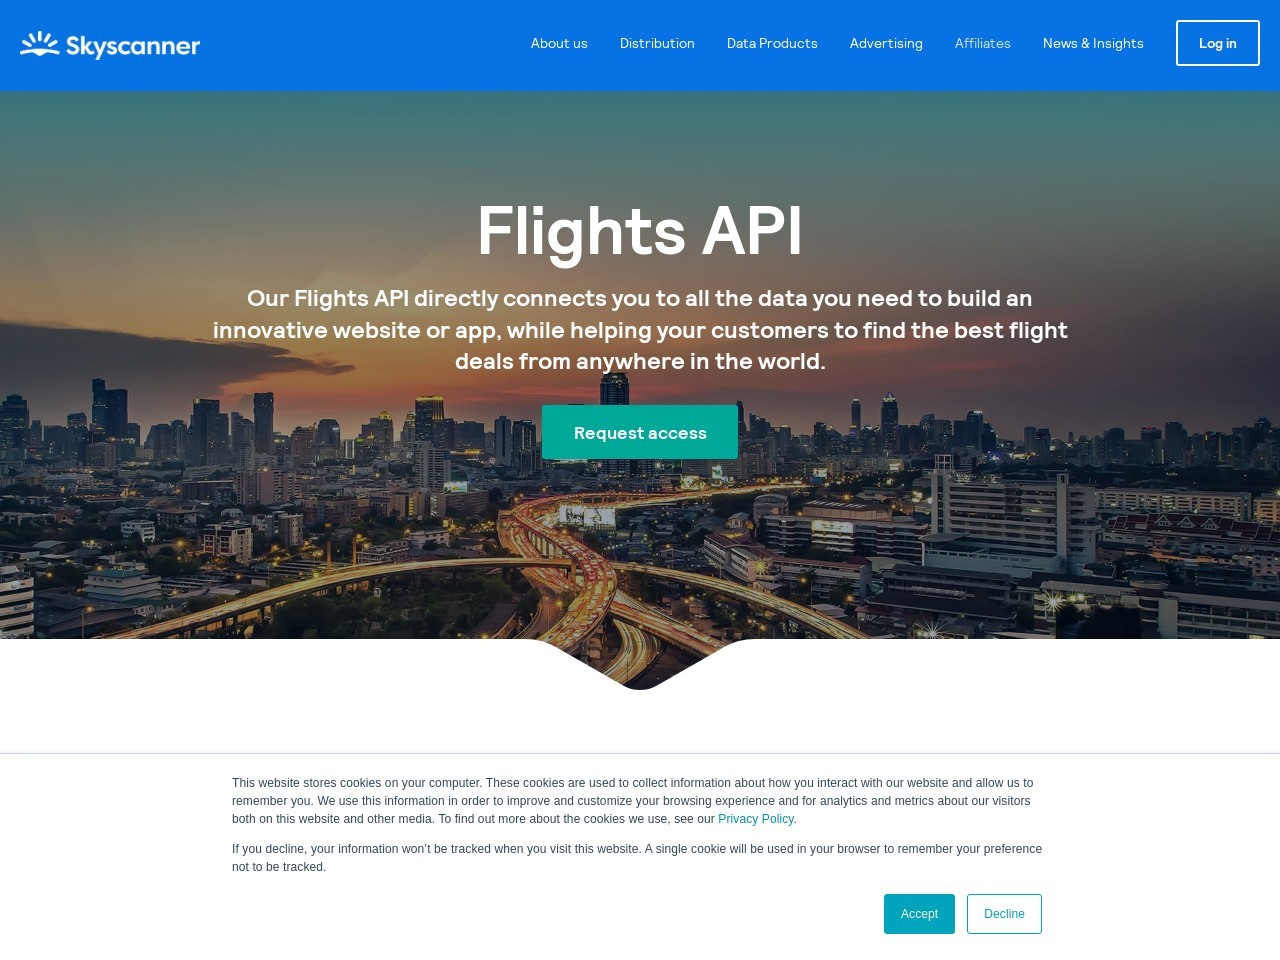 https://partners.skyscanner.net/affiliates/travel-apis/